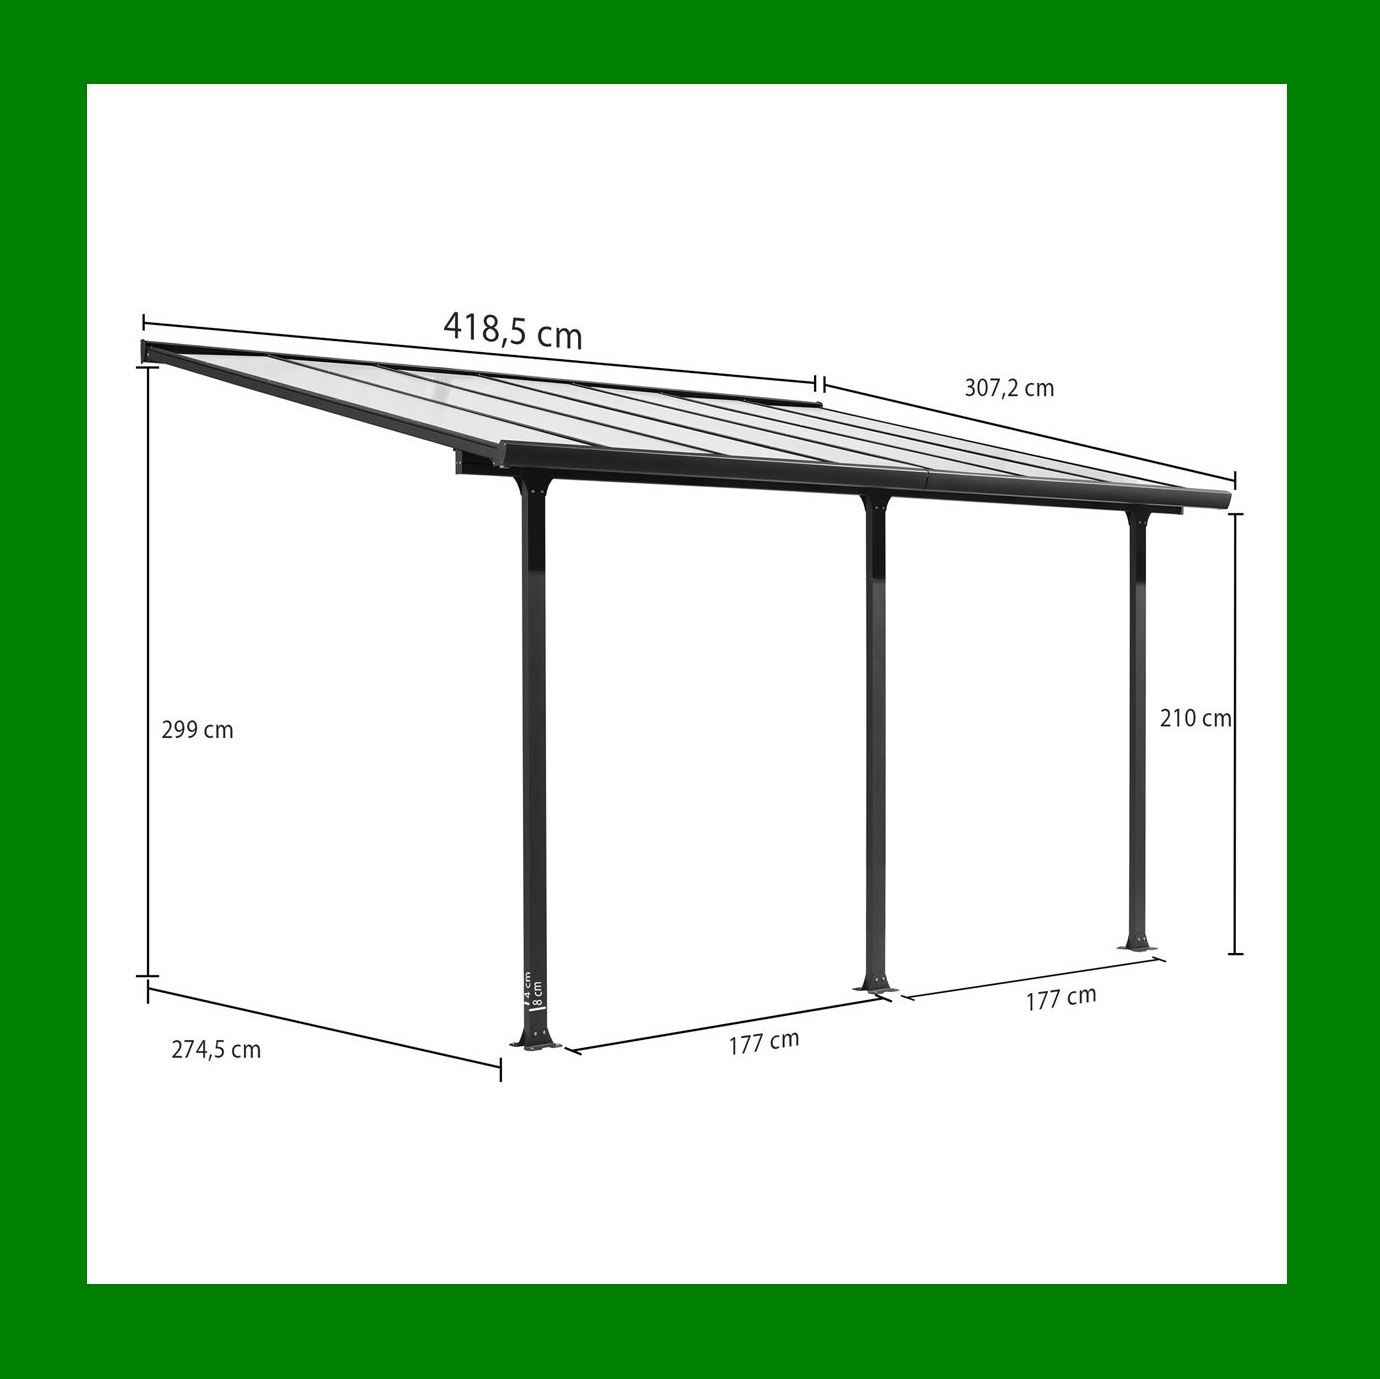 carport toit terrasse en aluminium 4x3 m abrirama tt3042al l 39 abri de jardin. Black Bedroom Furniture Sets. Home Design Ideas